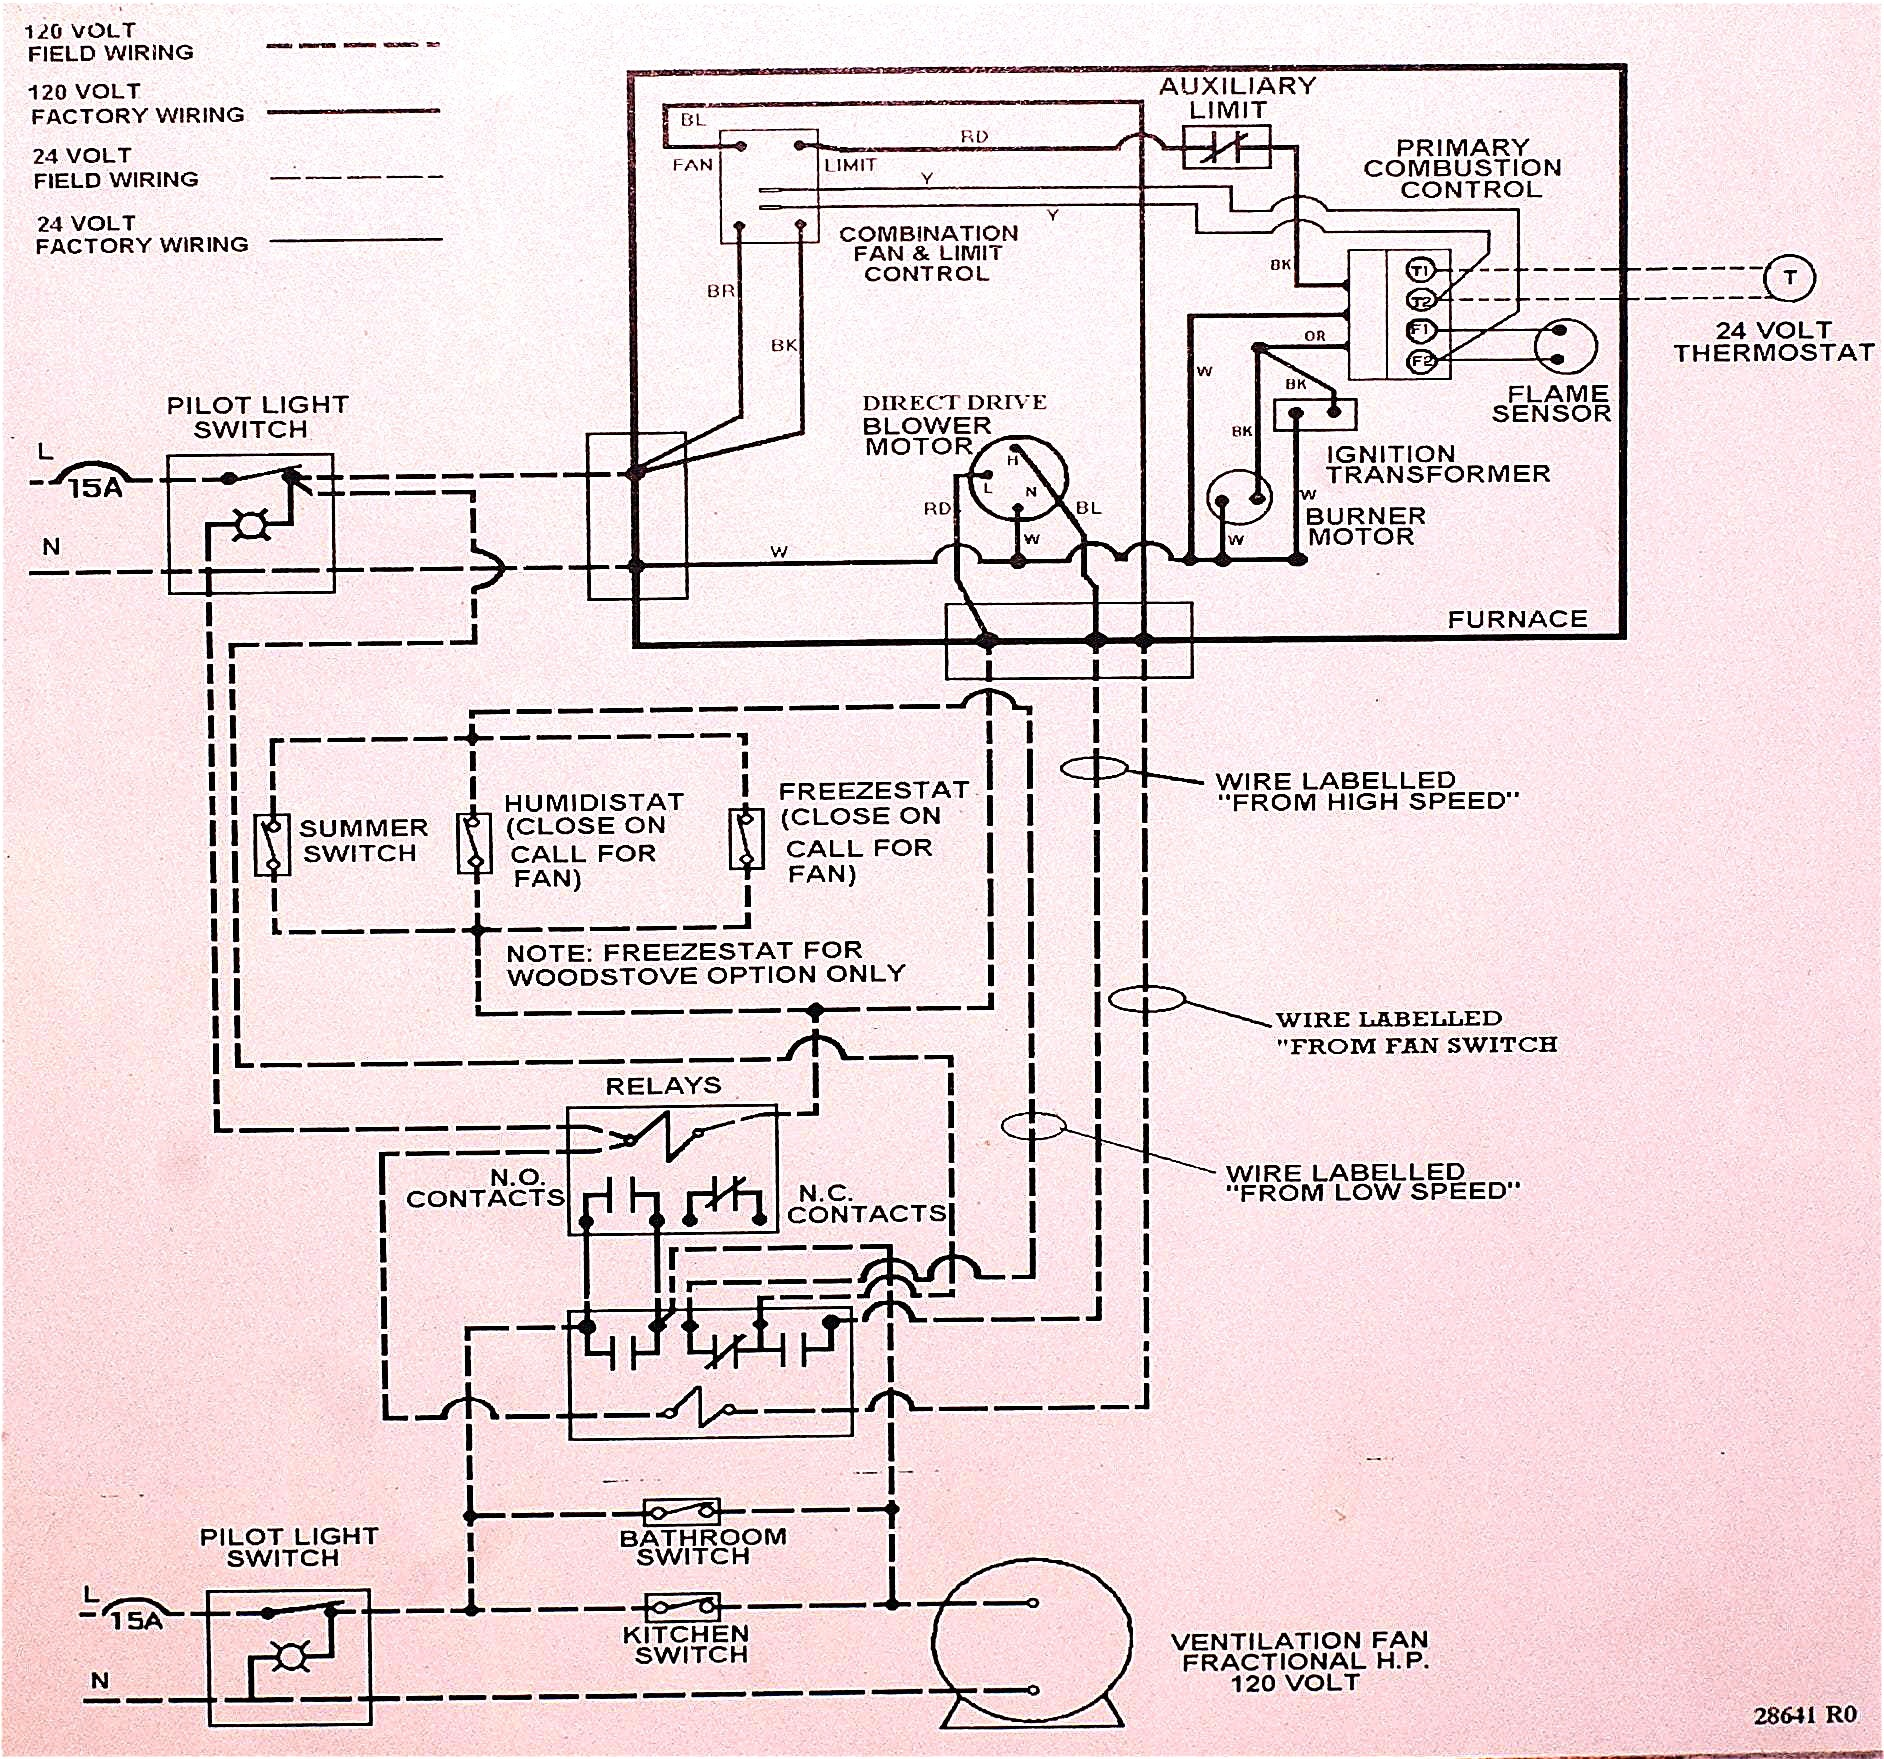 Older Gas Furnace Wiring Diagram | My Wiring DIagram